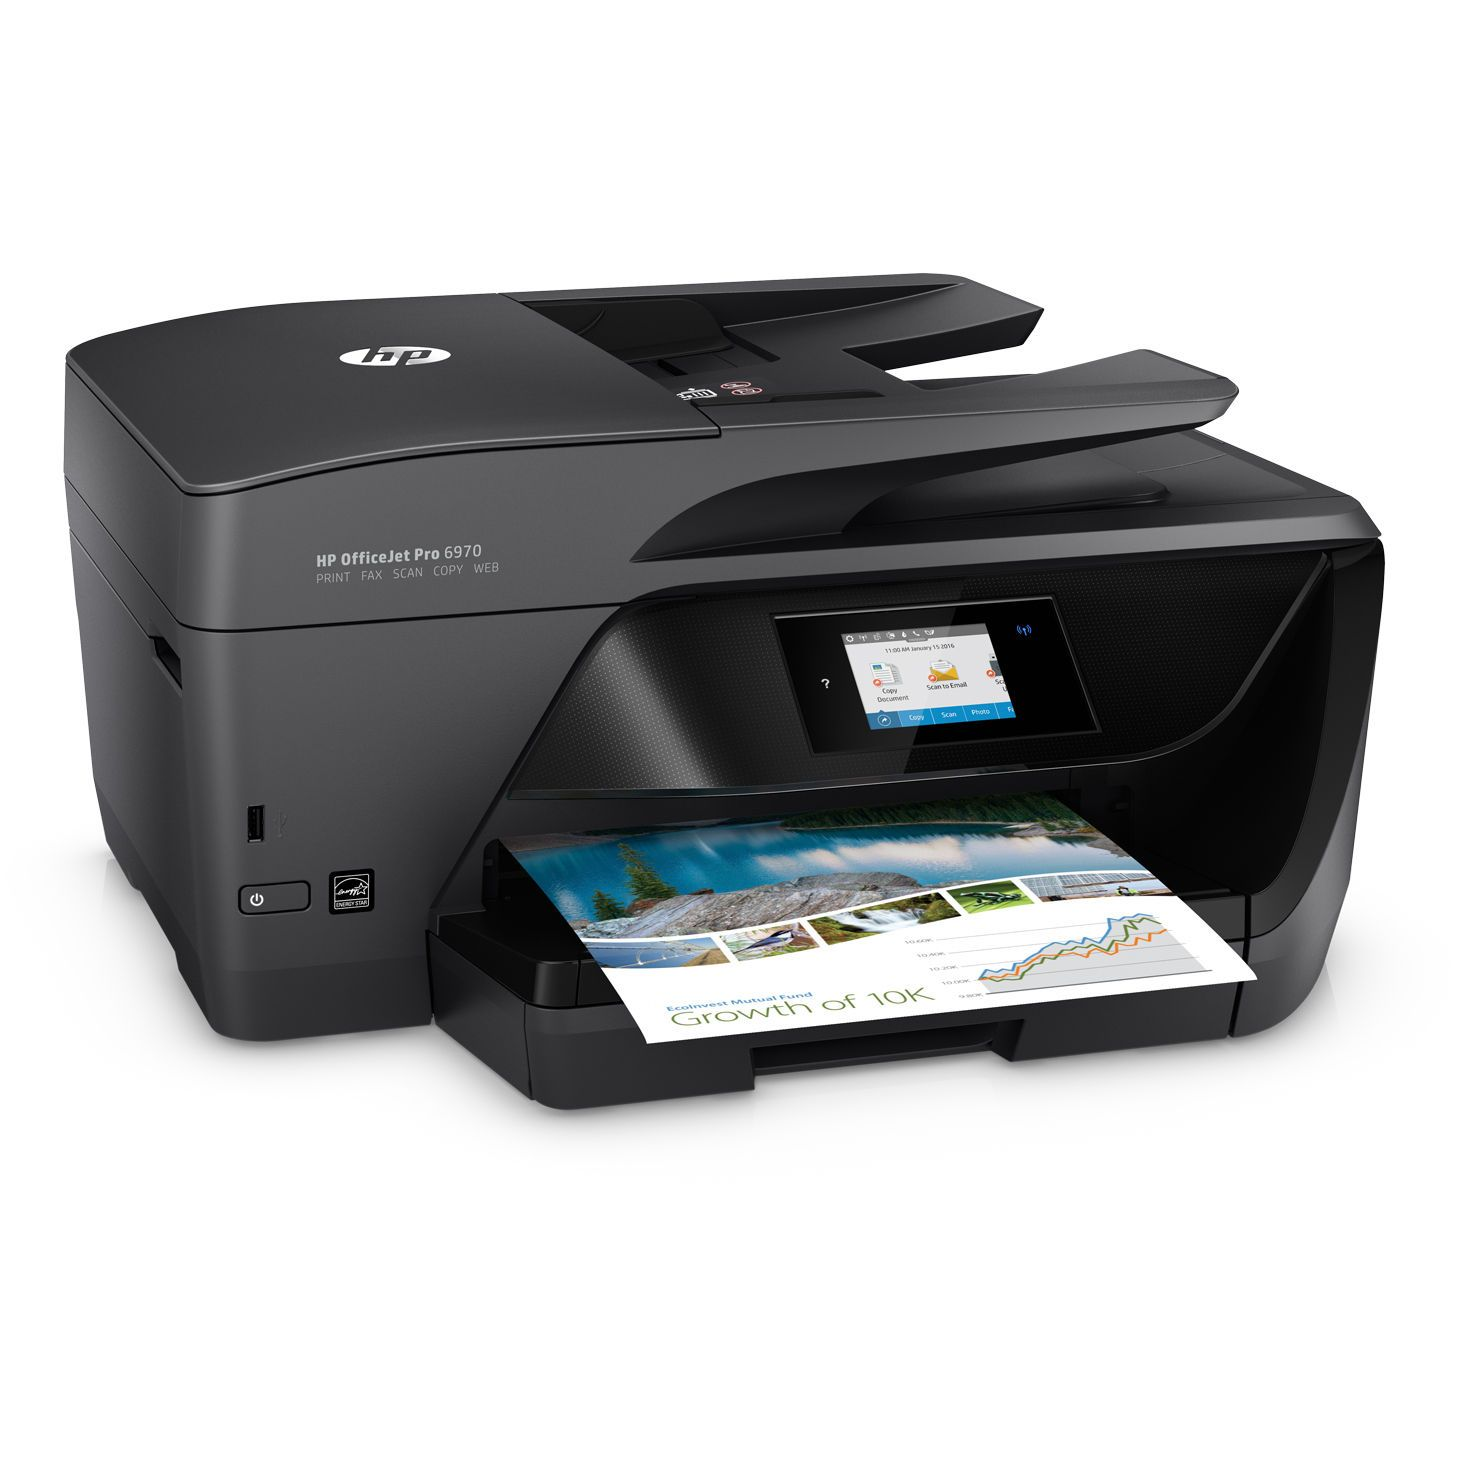 Multifunctional Inkjet Color HP OfficeJet Pro 6970 All-in-One